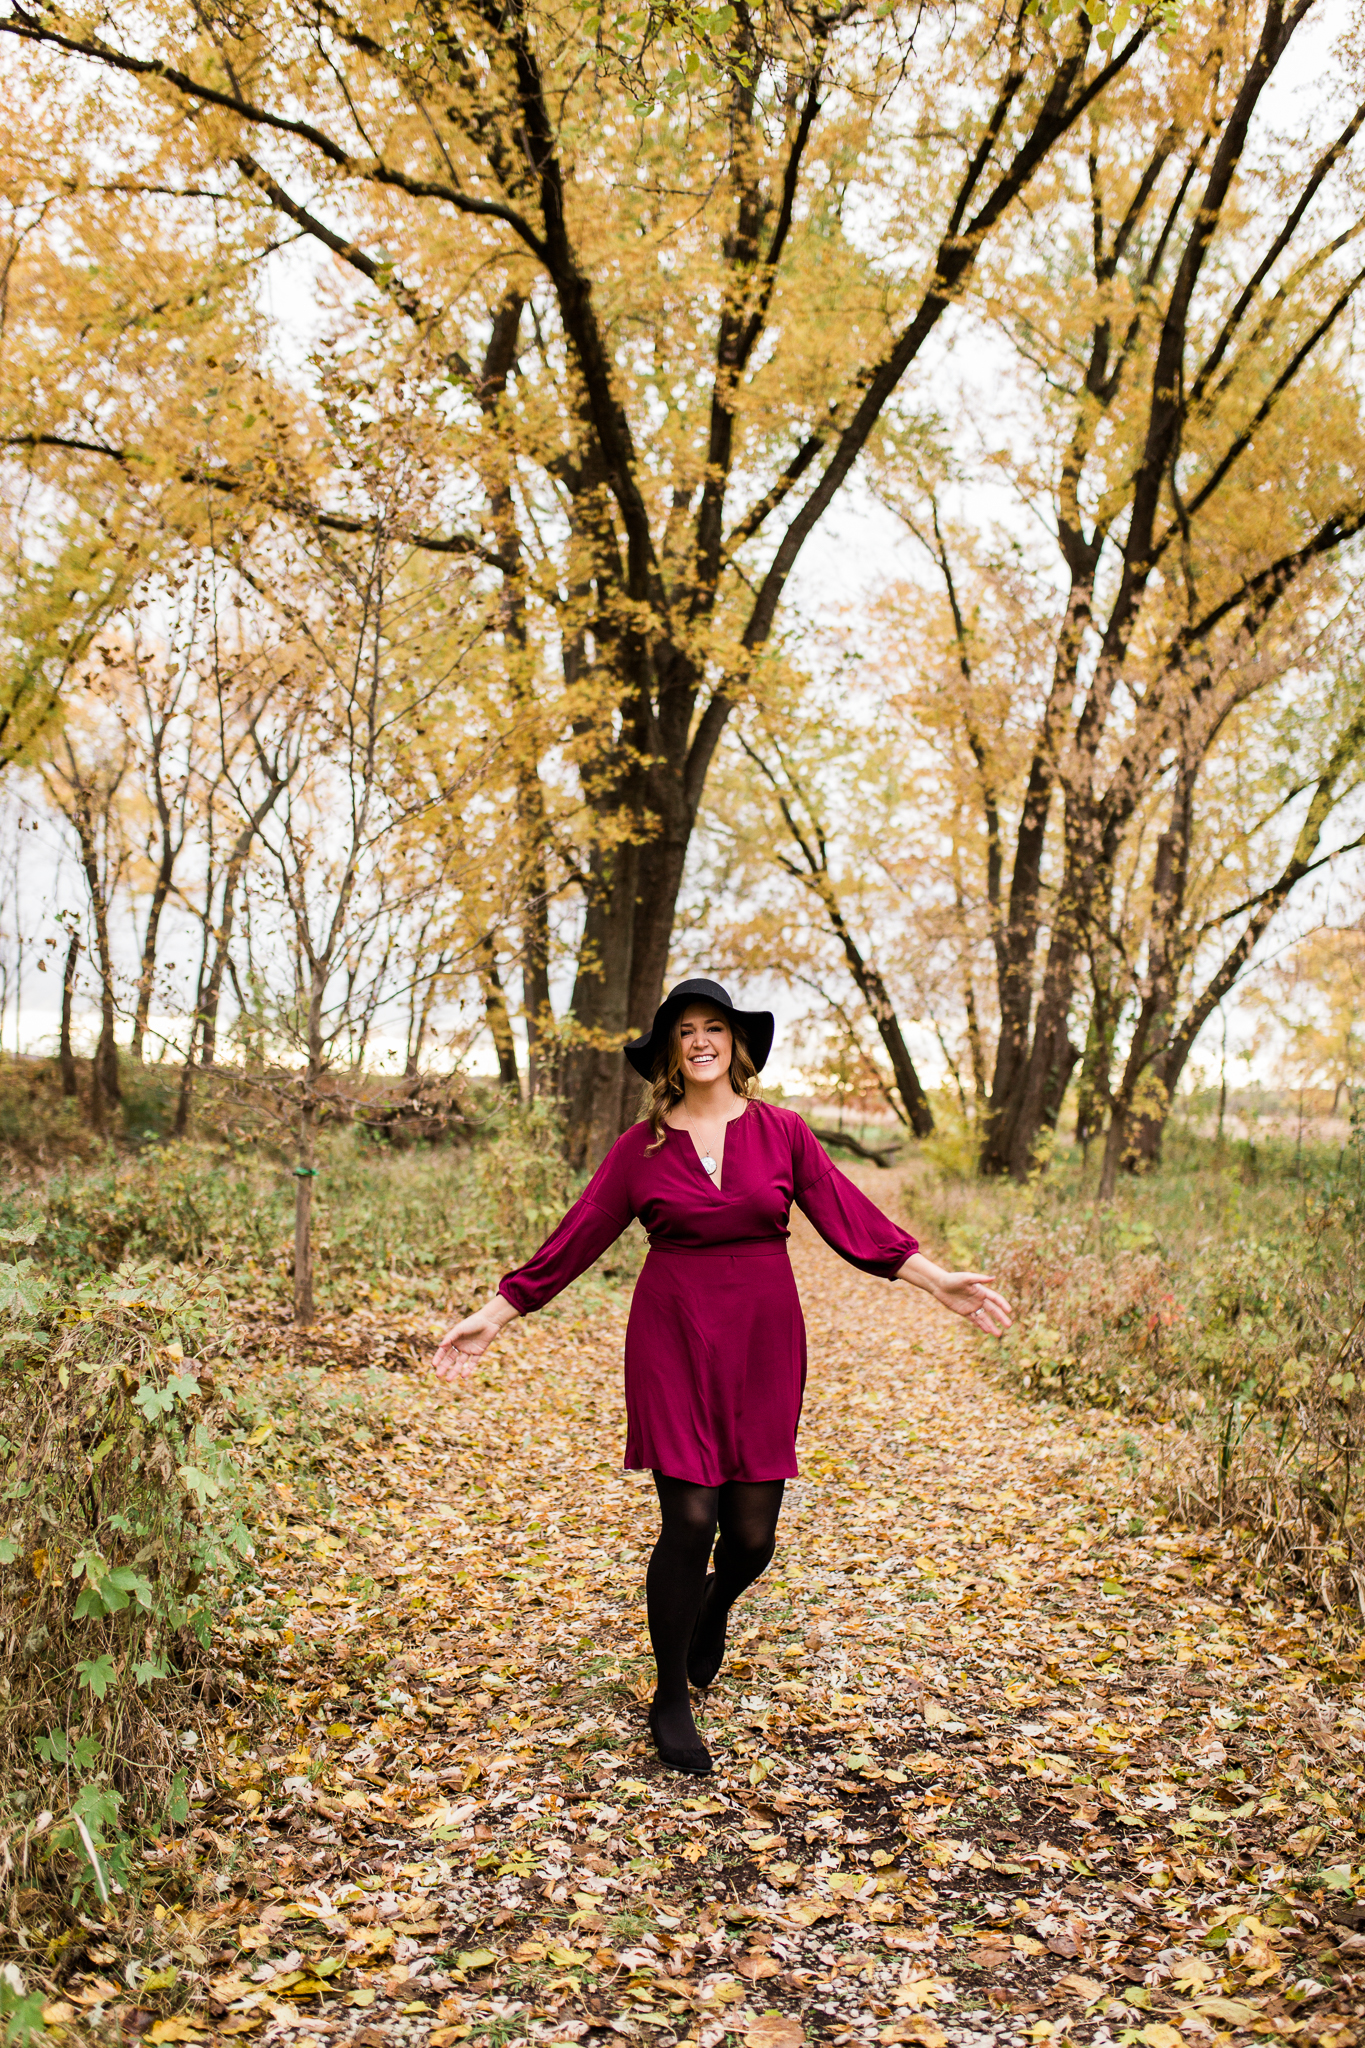 Woman dances in the autumn woods, carefree lifestyle branding images, Kansas City lifestyle coach, Rebecca Clair Photography